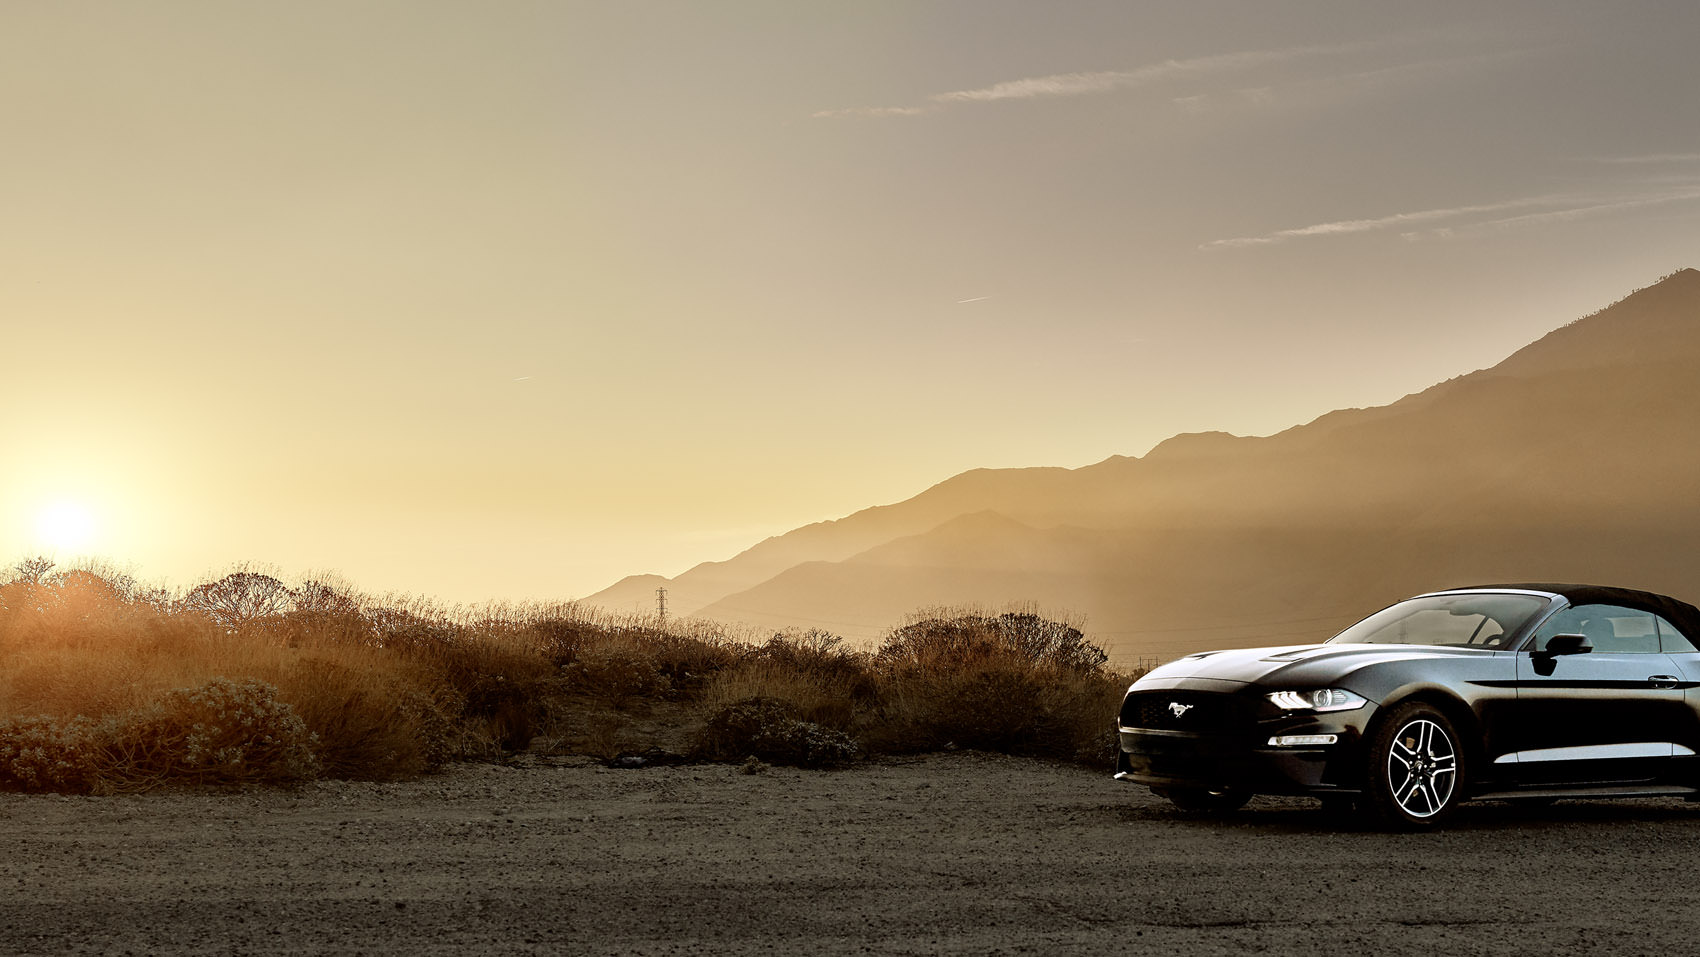 Ford Mustang convertible in the Desert at Sunset